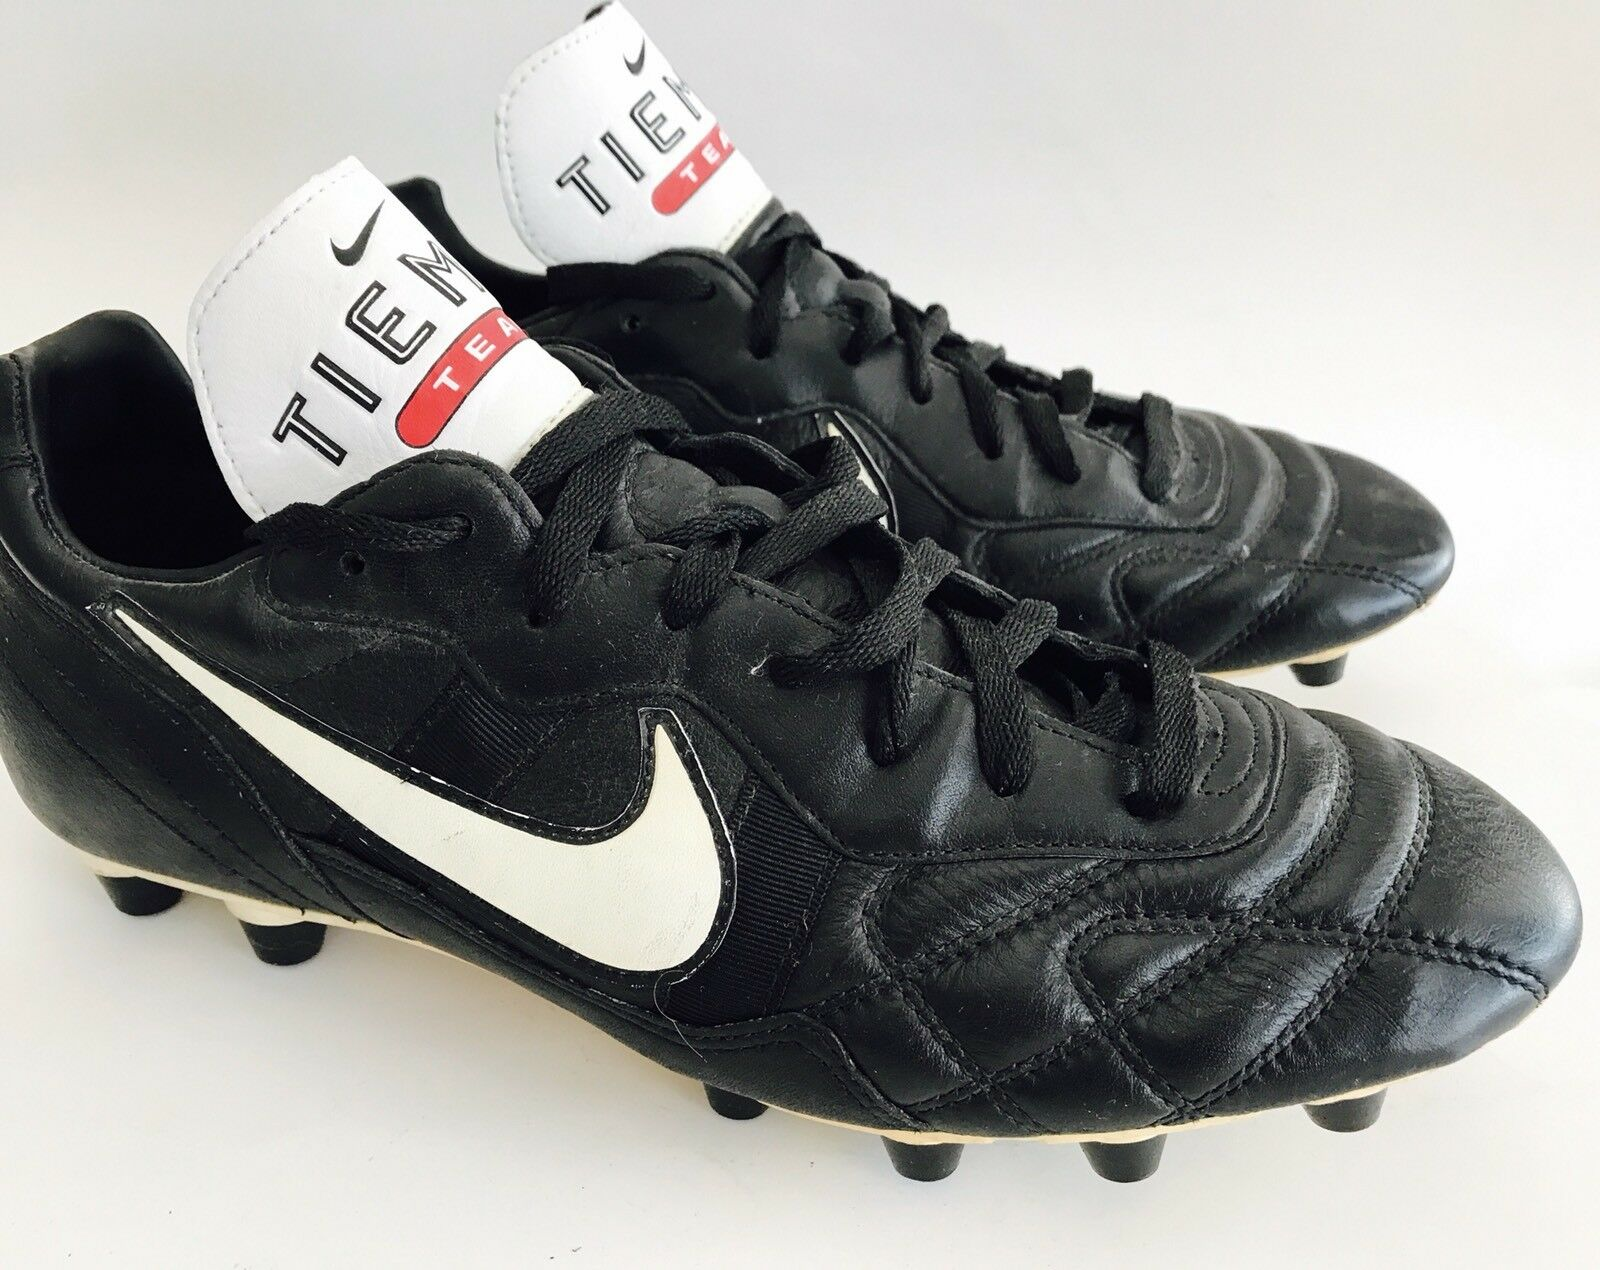 NIKE Tiempo Legend Black Leather Soccer Cleats shoes Sneakers Men's Size 11